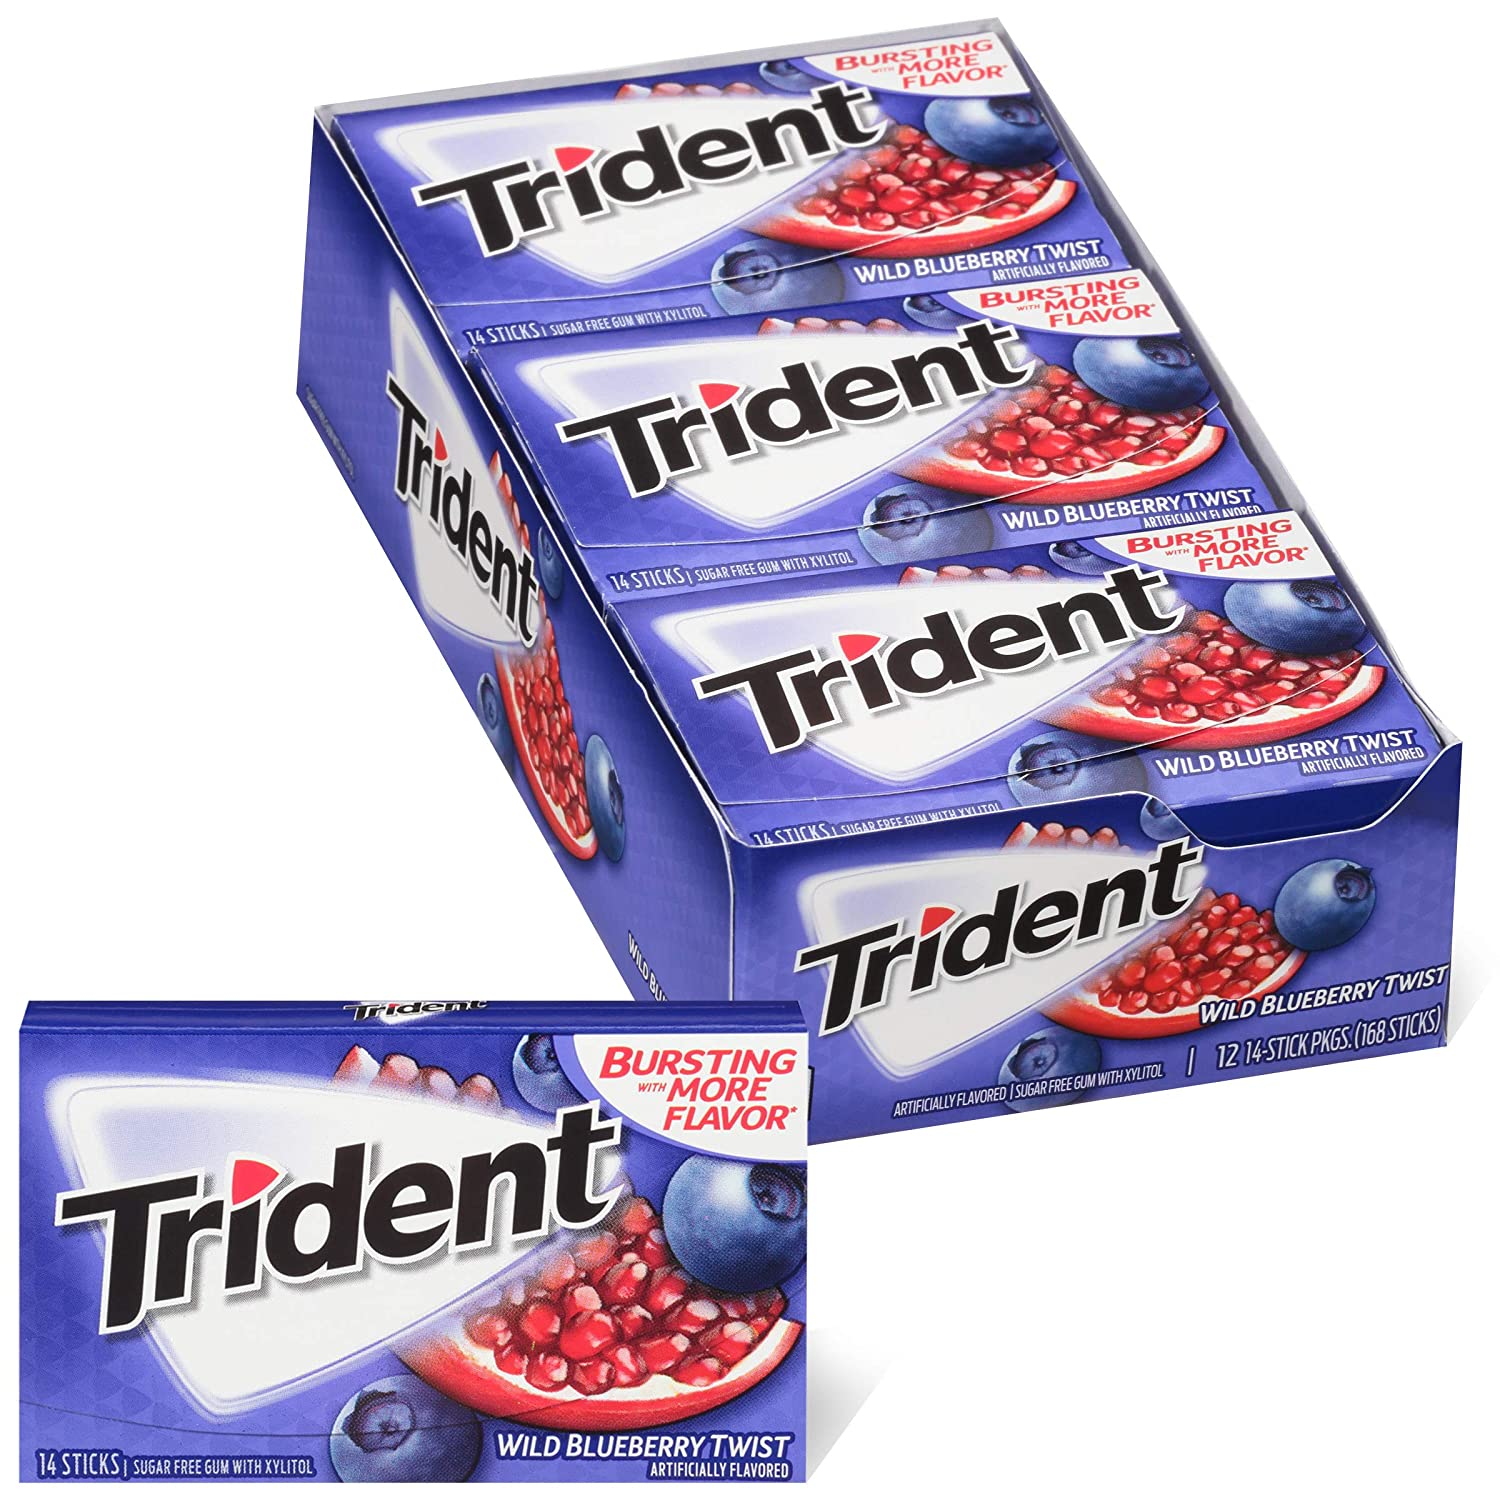 Trident Wild Blueberry Twist Sugar Free Gum, Made with Xylitol, 12 Packs of 14 Pieces (168 Total Pieces)